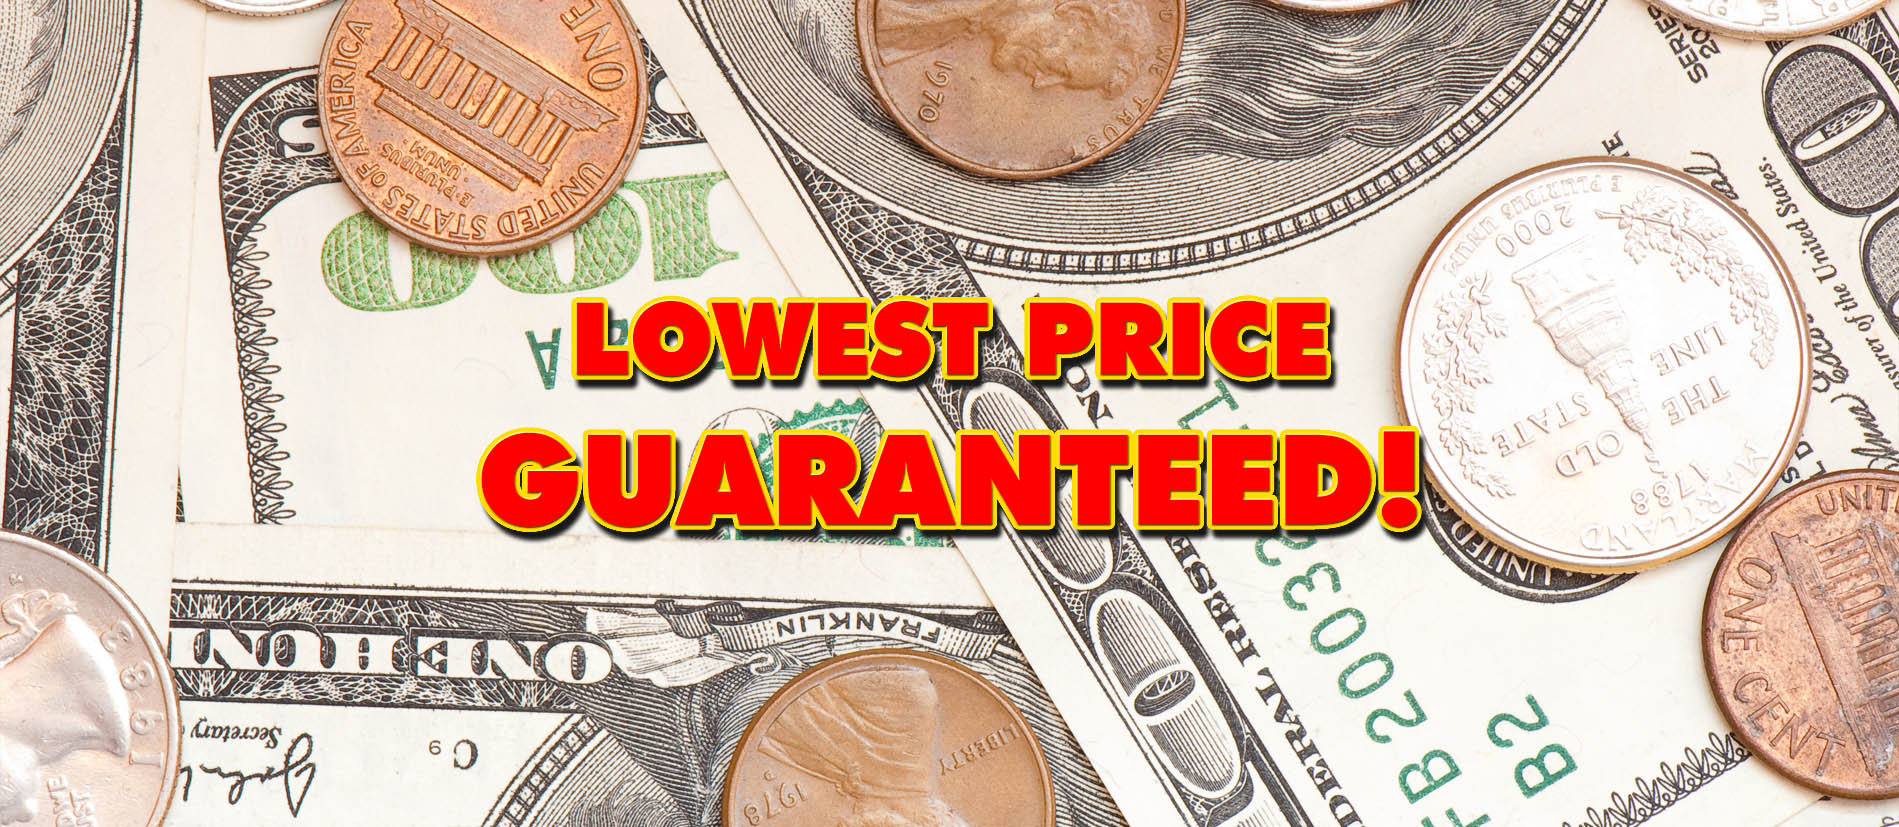 Price Pledge: Lowest Price Guaranteed!